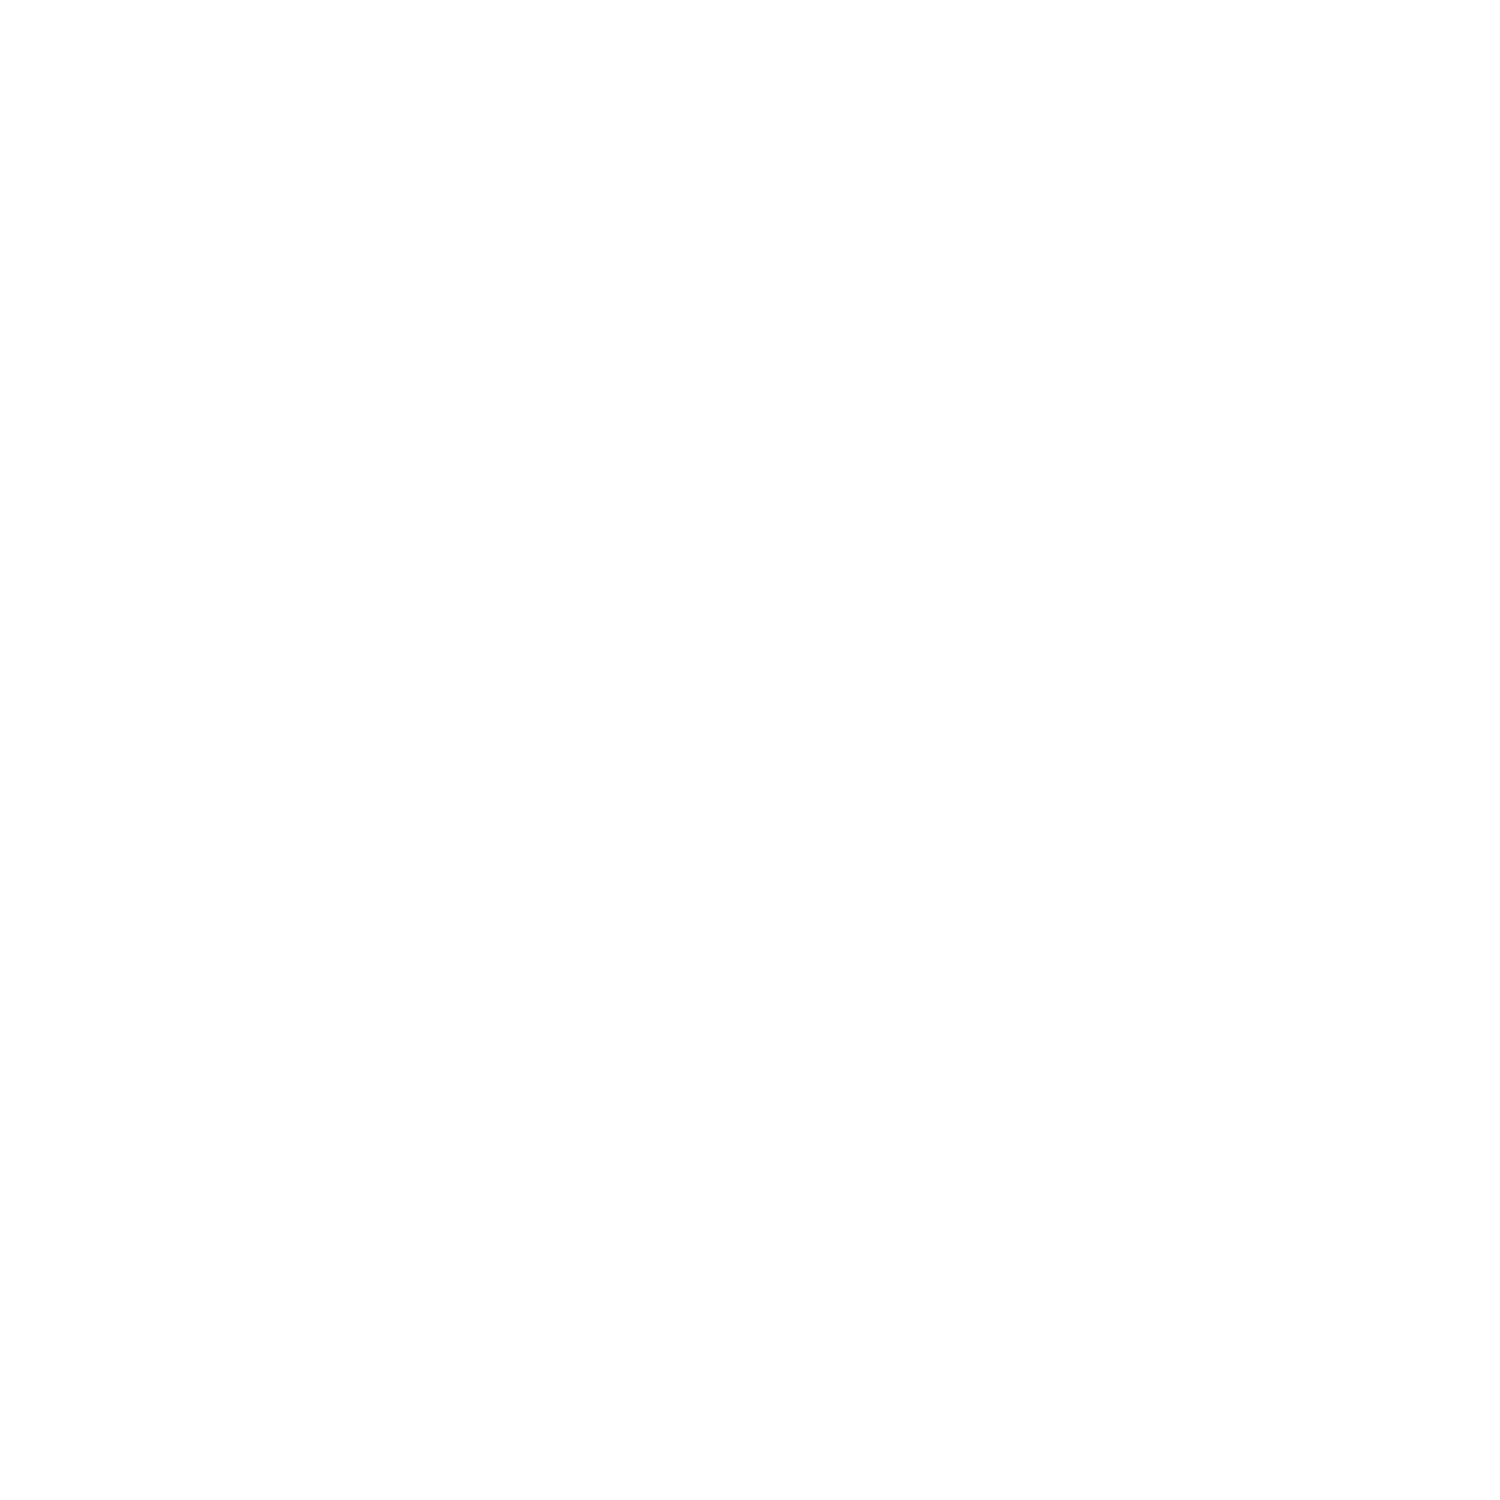 The Open Road Podcast